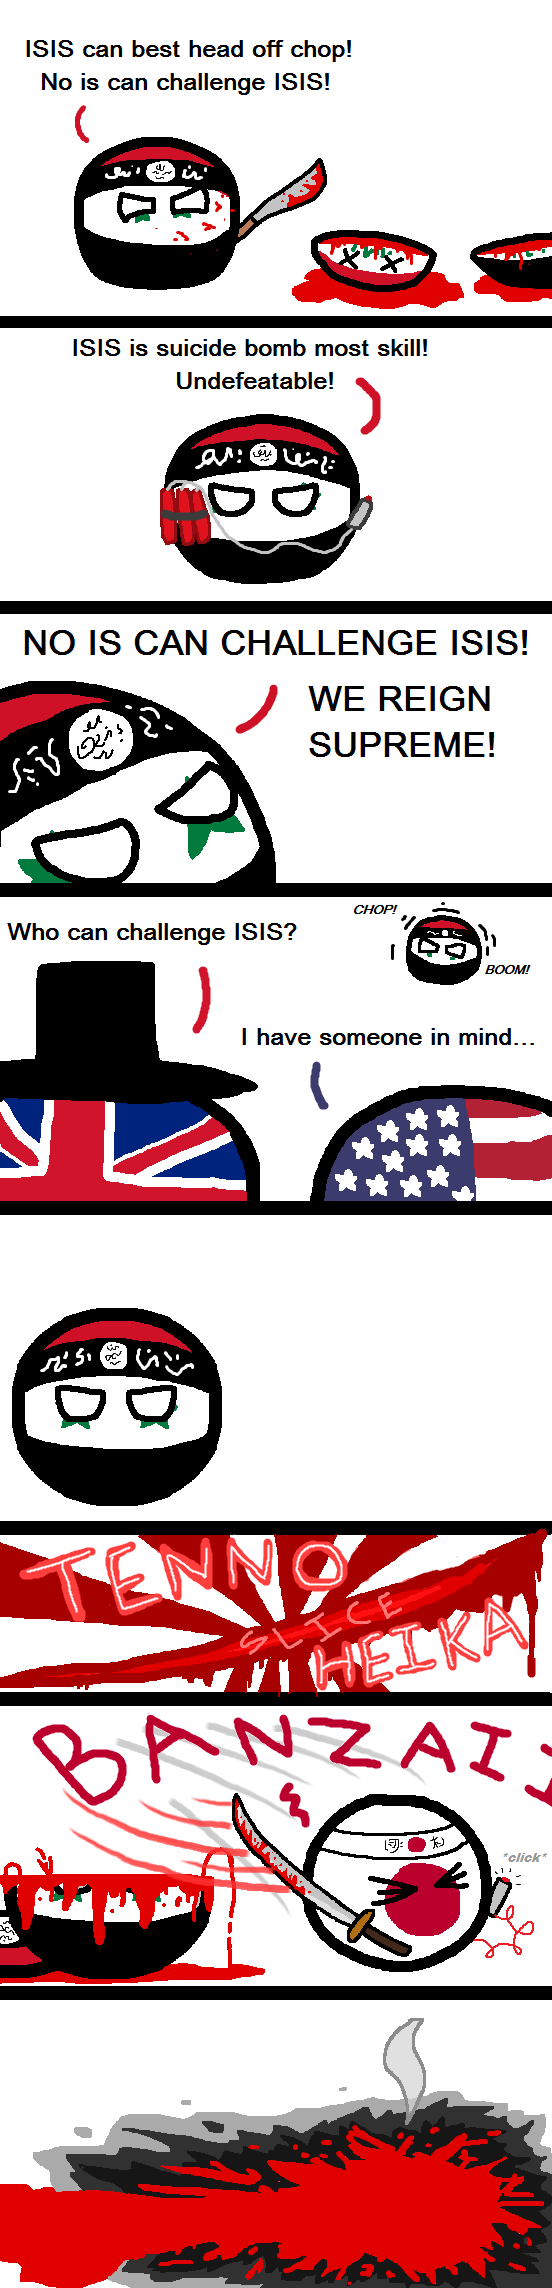 ISIS Gets a Rival